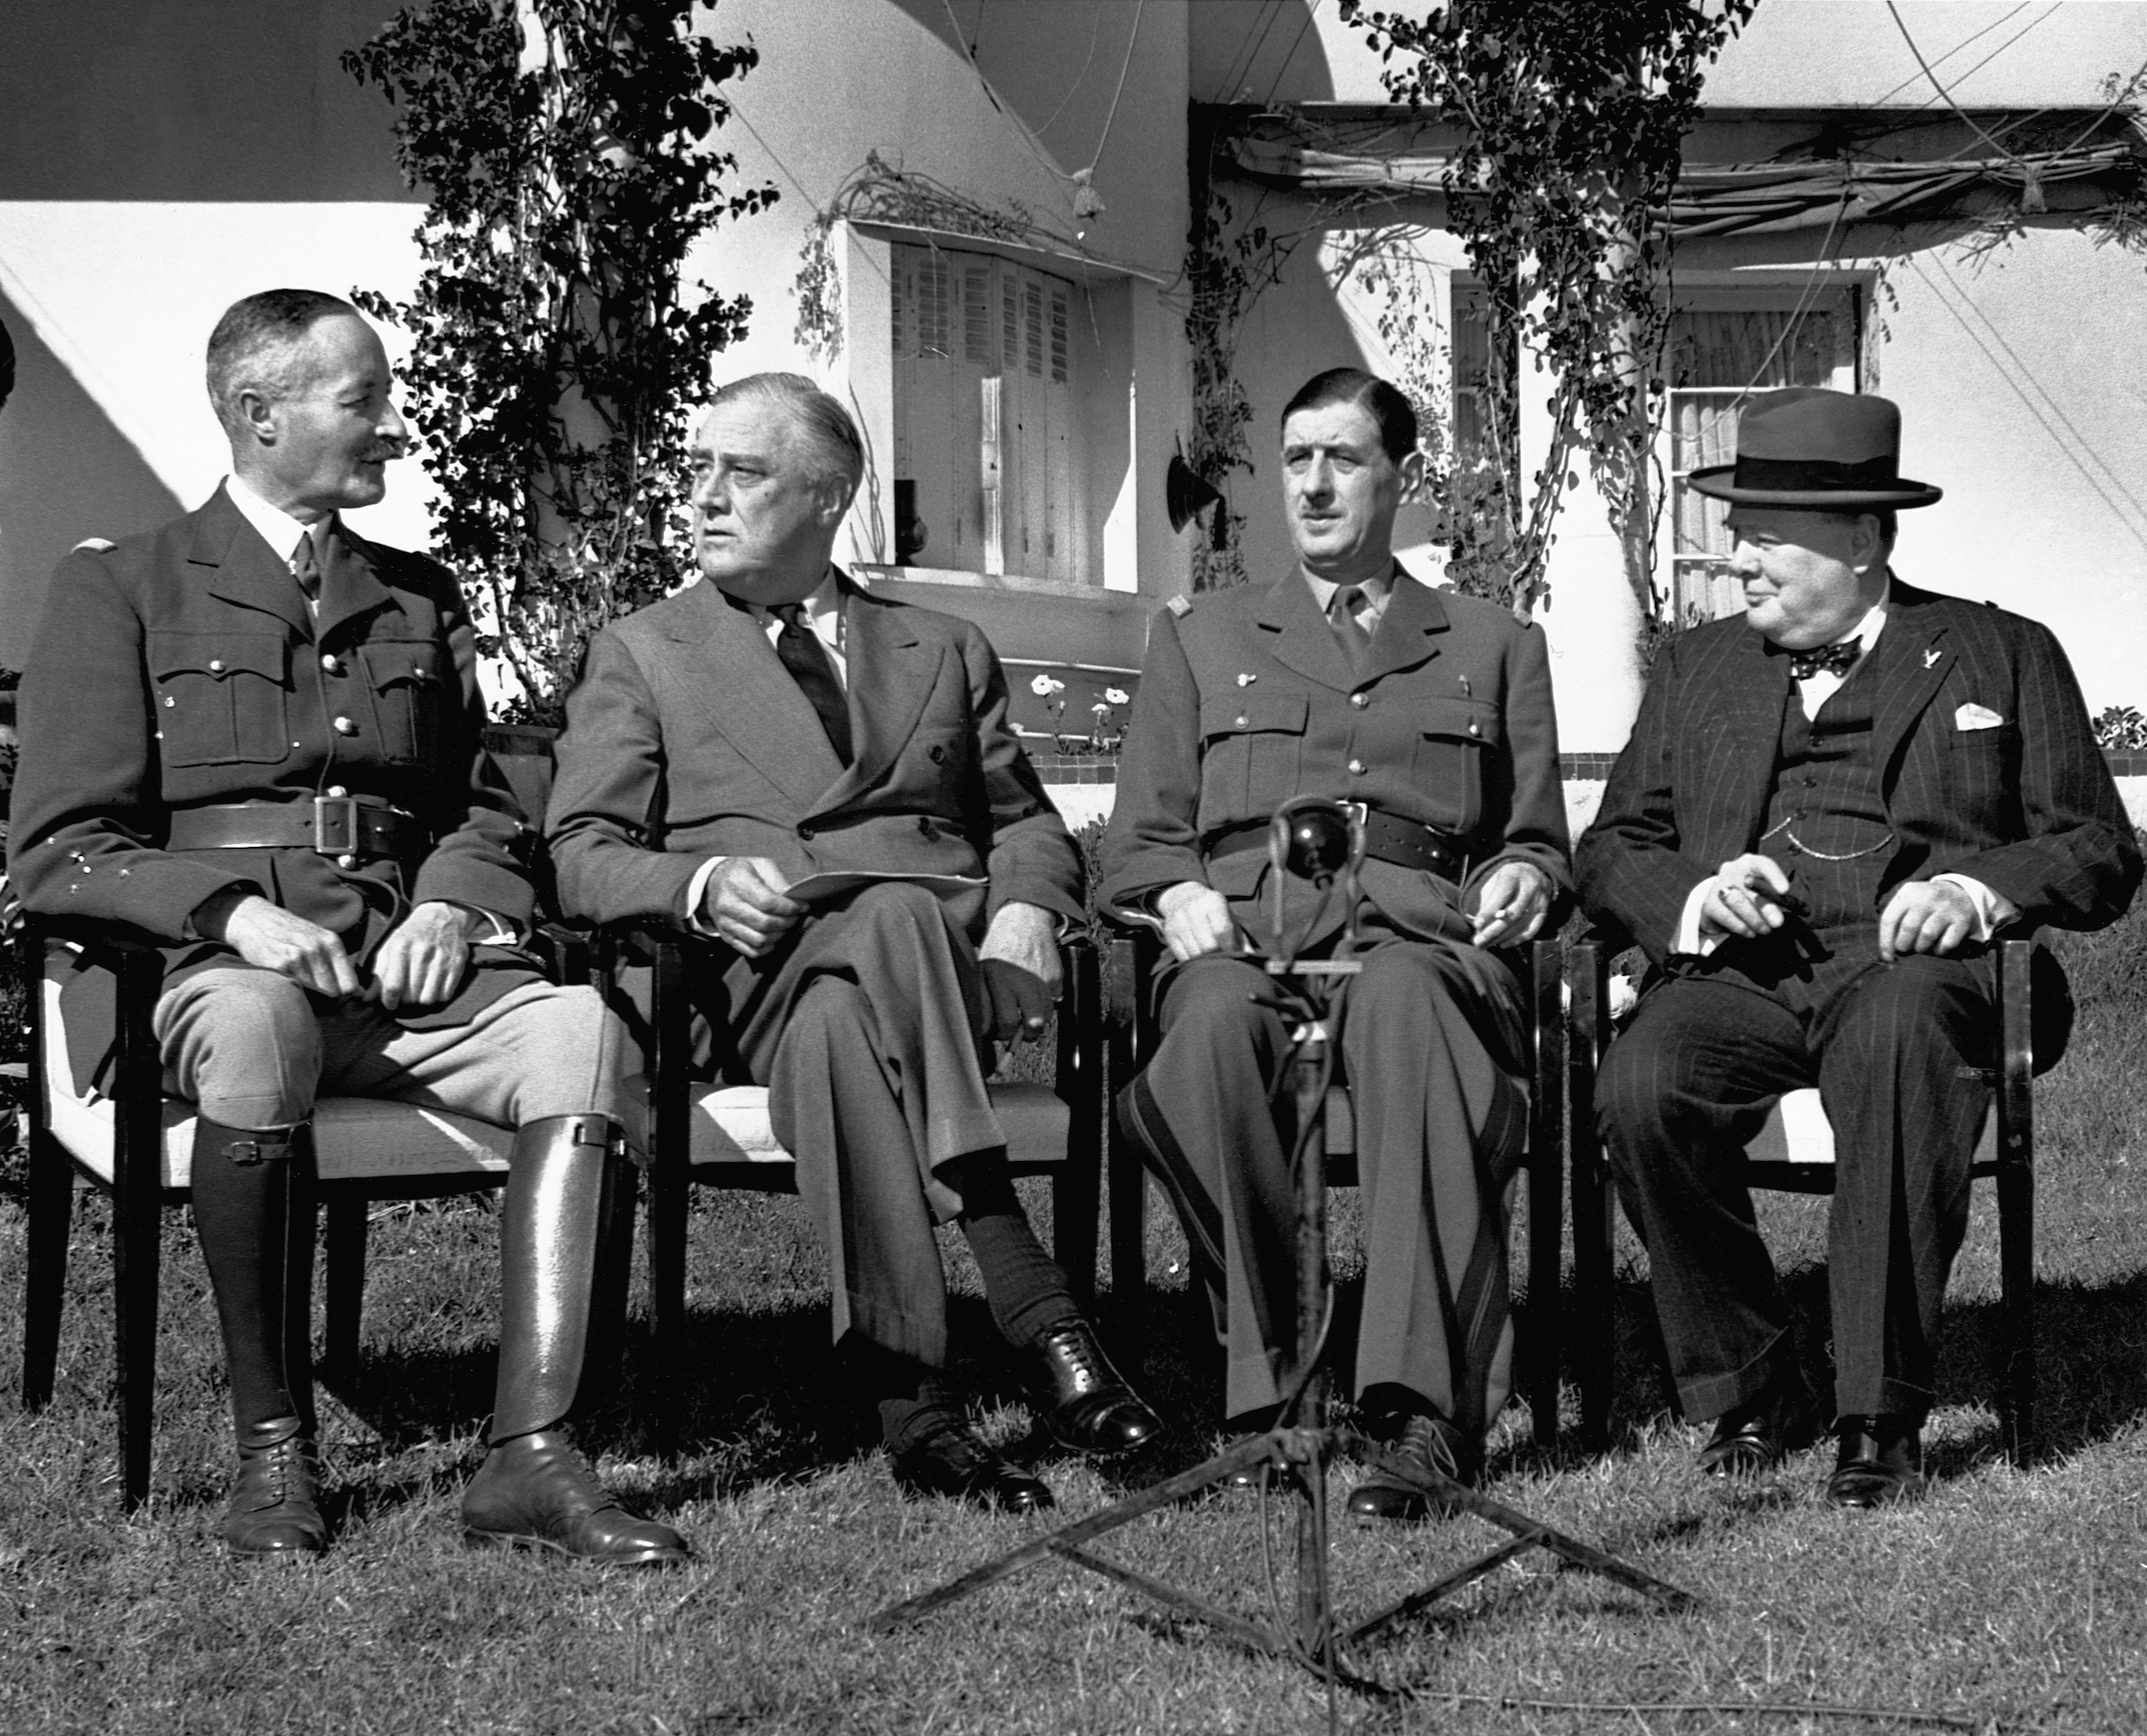 (L-R) General Henri Giraud, Franklin Delano Roosevelt, Charles de Gaulle, and Winston Churchill at the Casablanca Conference in 1943.